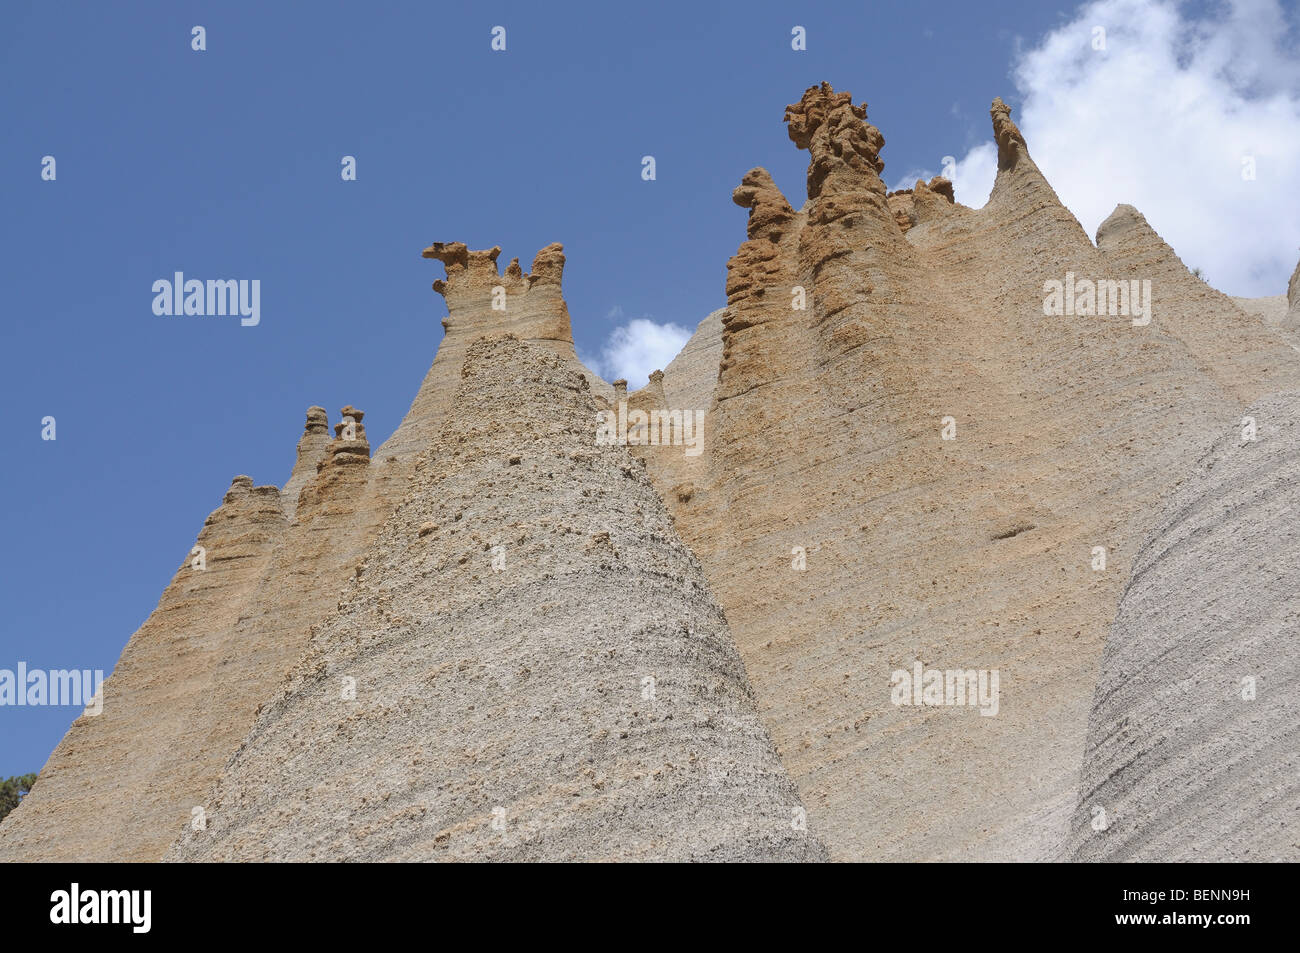 Rock Formations Paisaje Lunar ( Moonscape) on Canary Island Tenerife, Spain - Stock Image